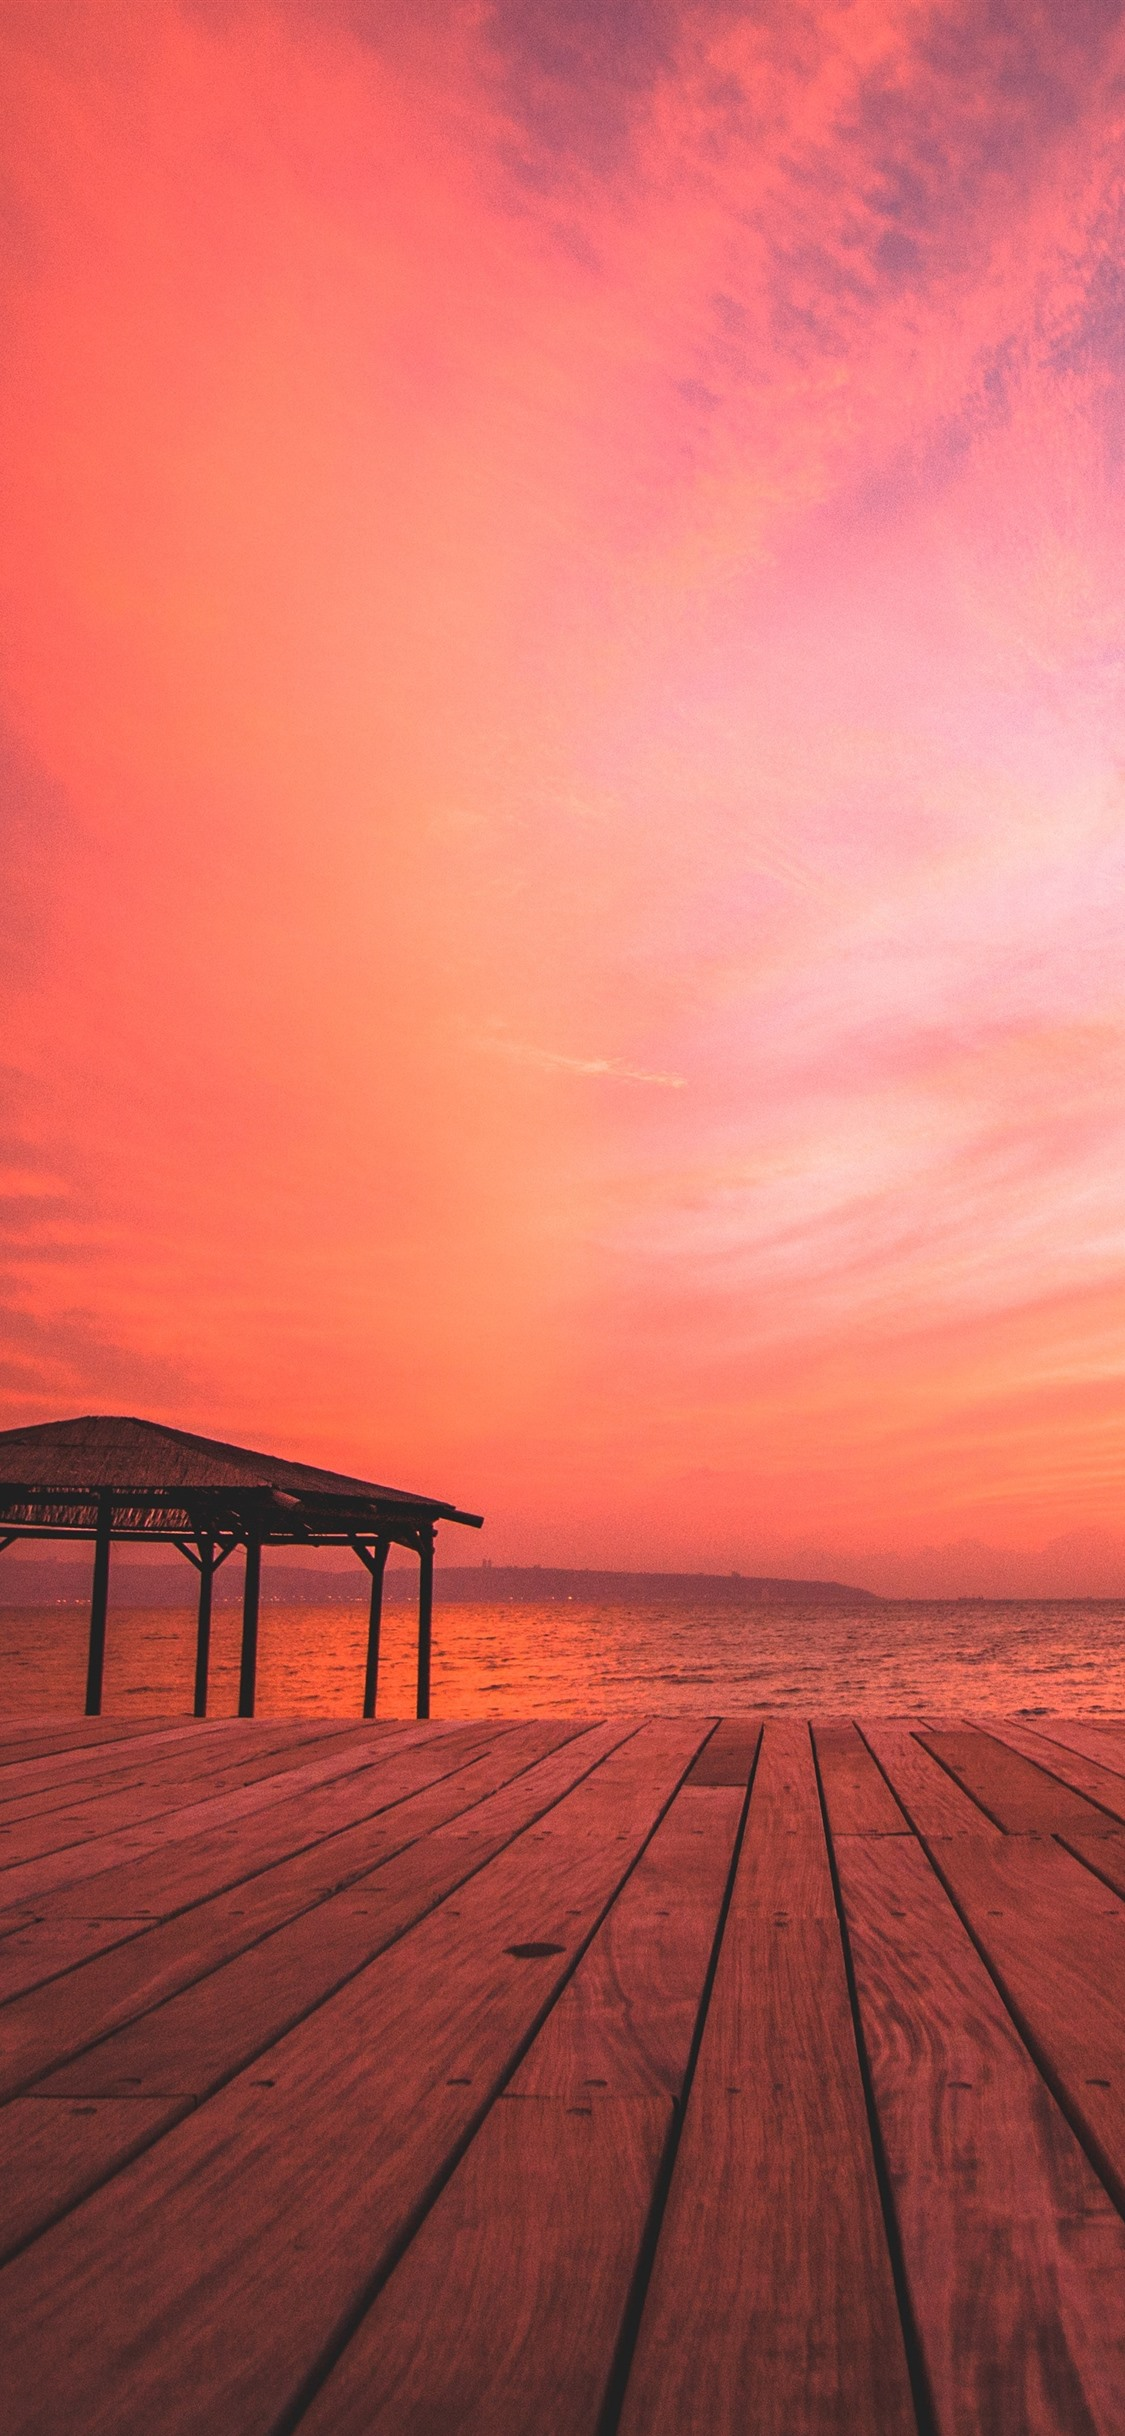 Beach Sea Wood Board Sunset Red Sky 1242x2688 Iphone 11 Pro Xs Max Wallpaper Background Picture Image